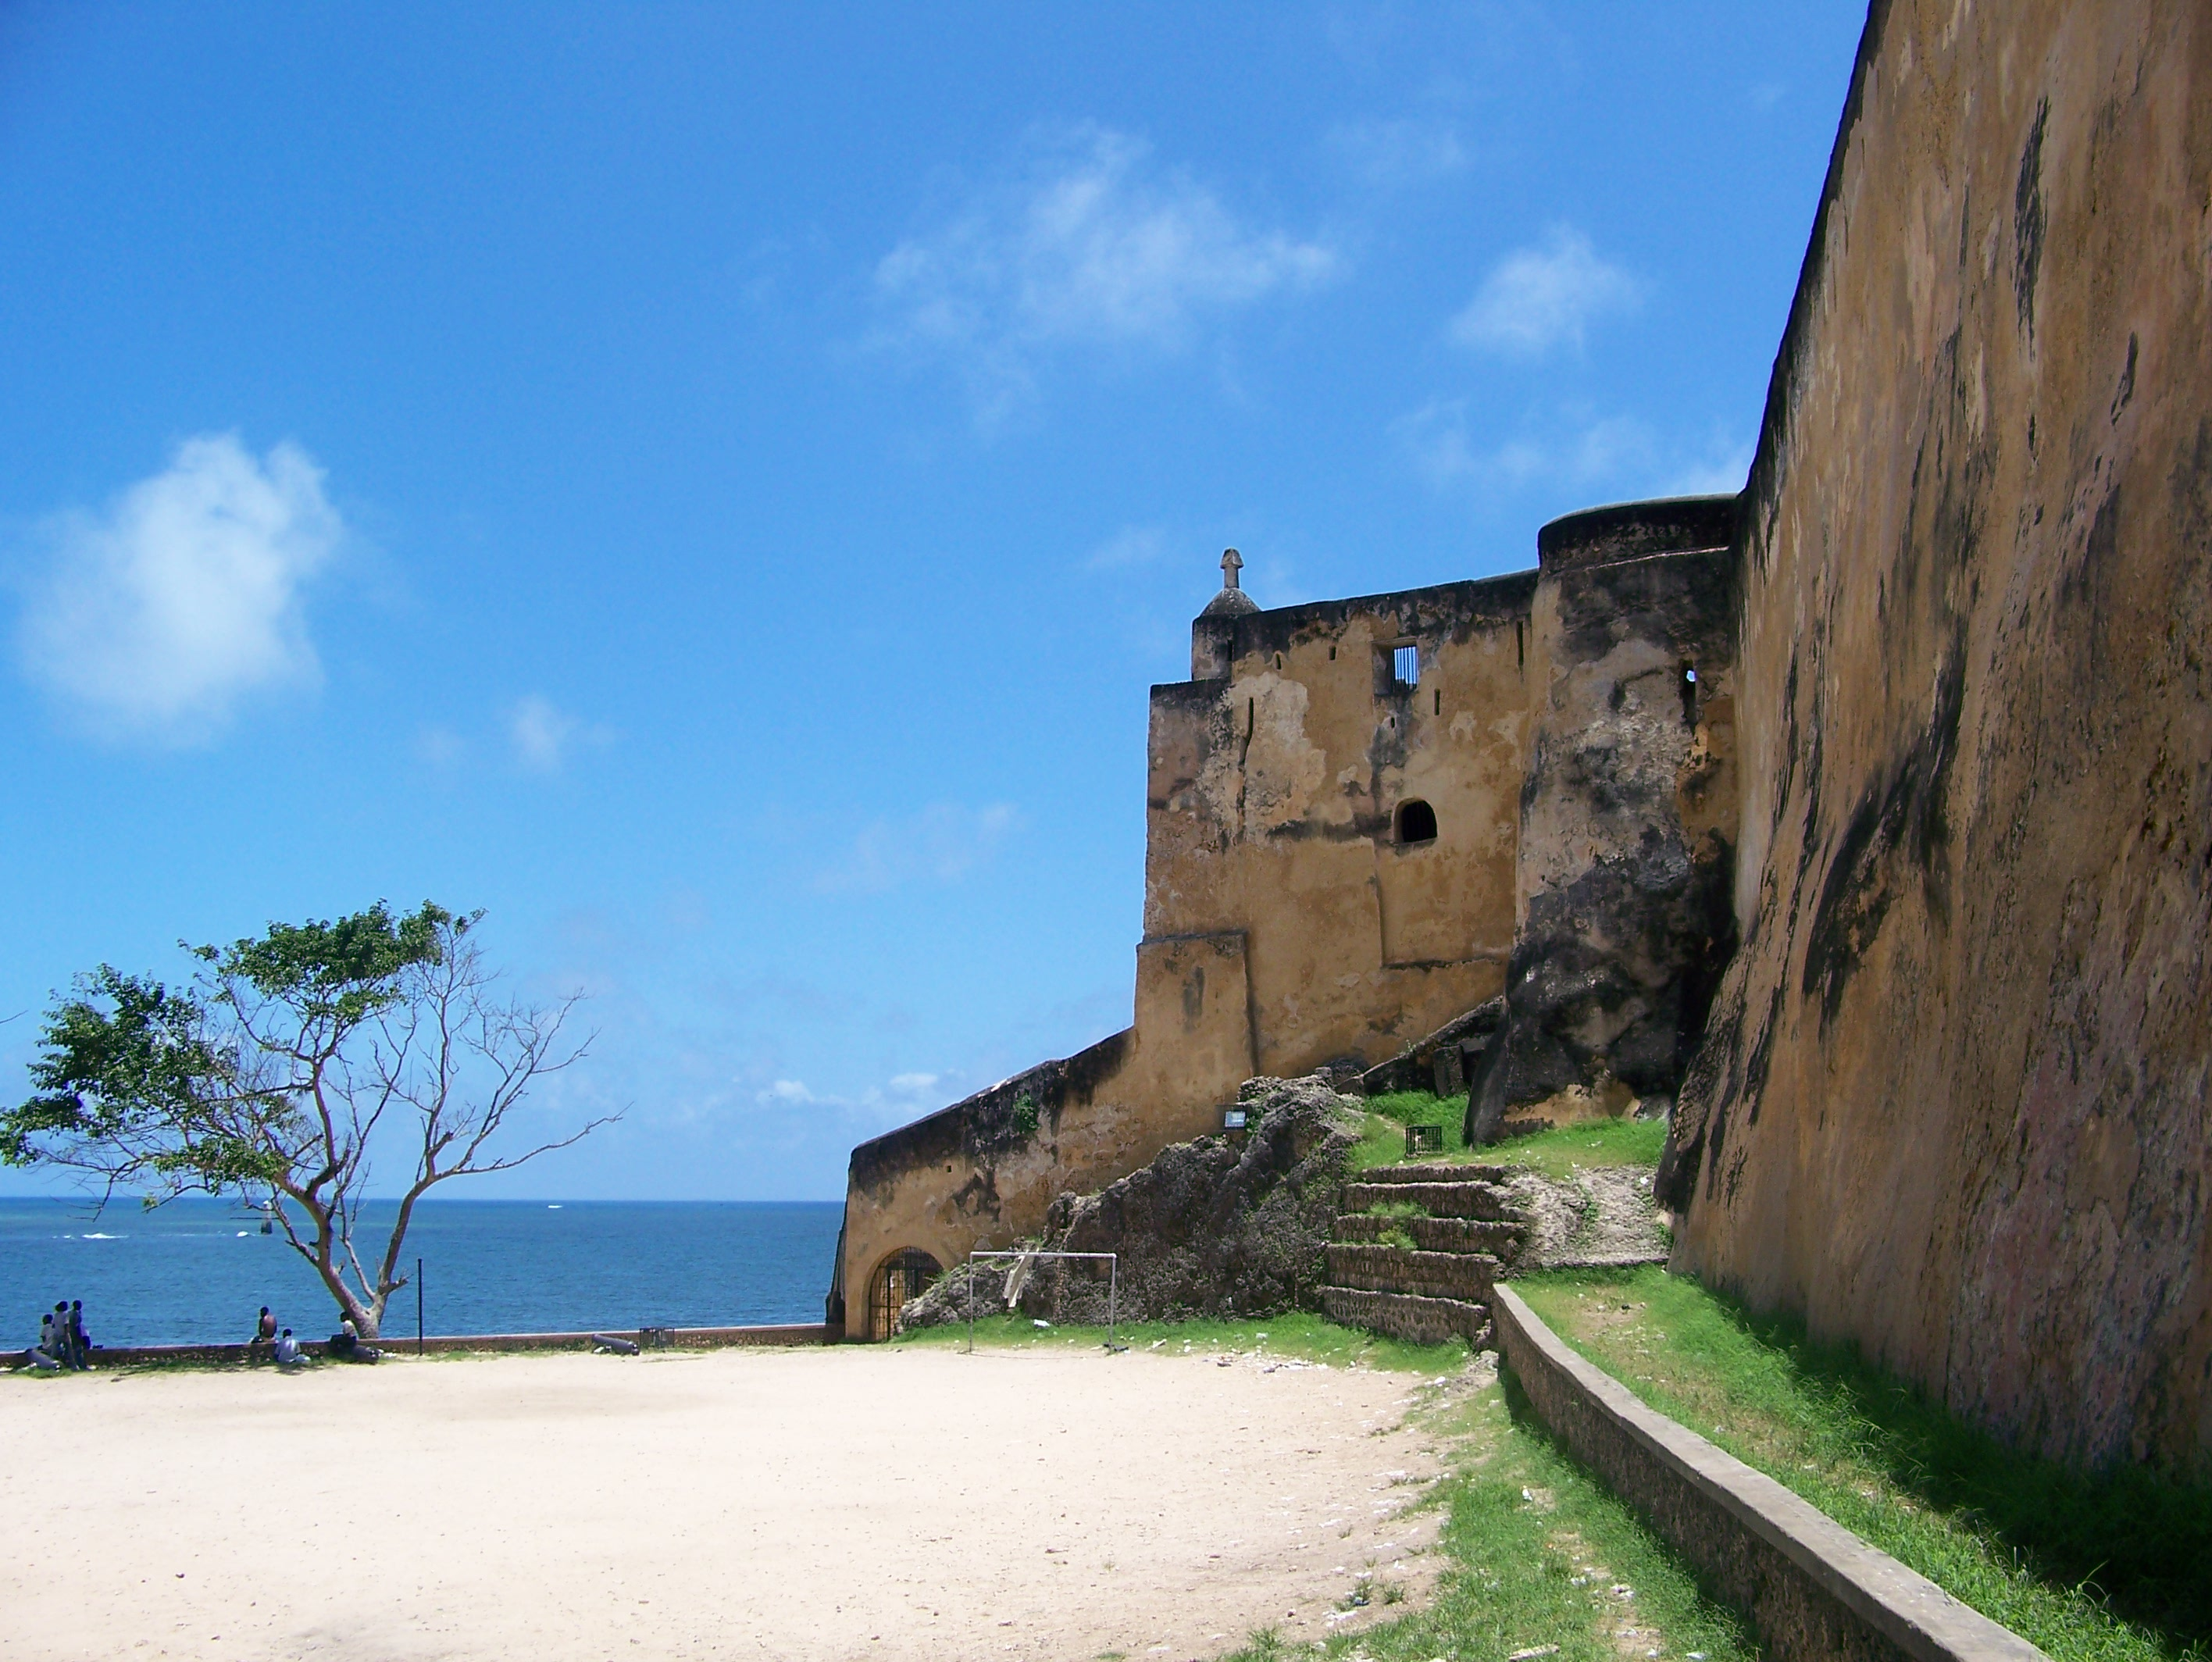 View of Fort Jesus in Mombasa